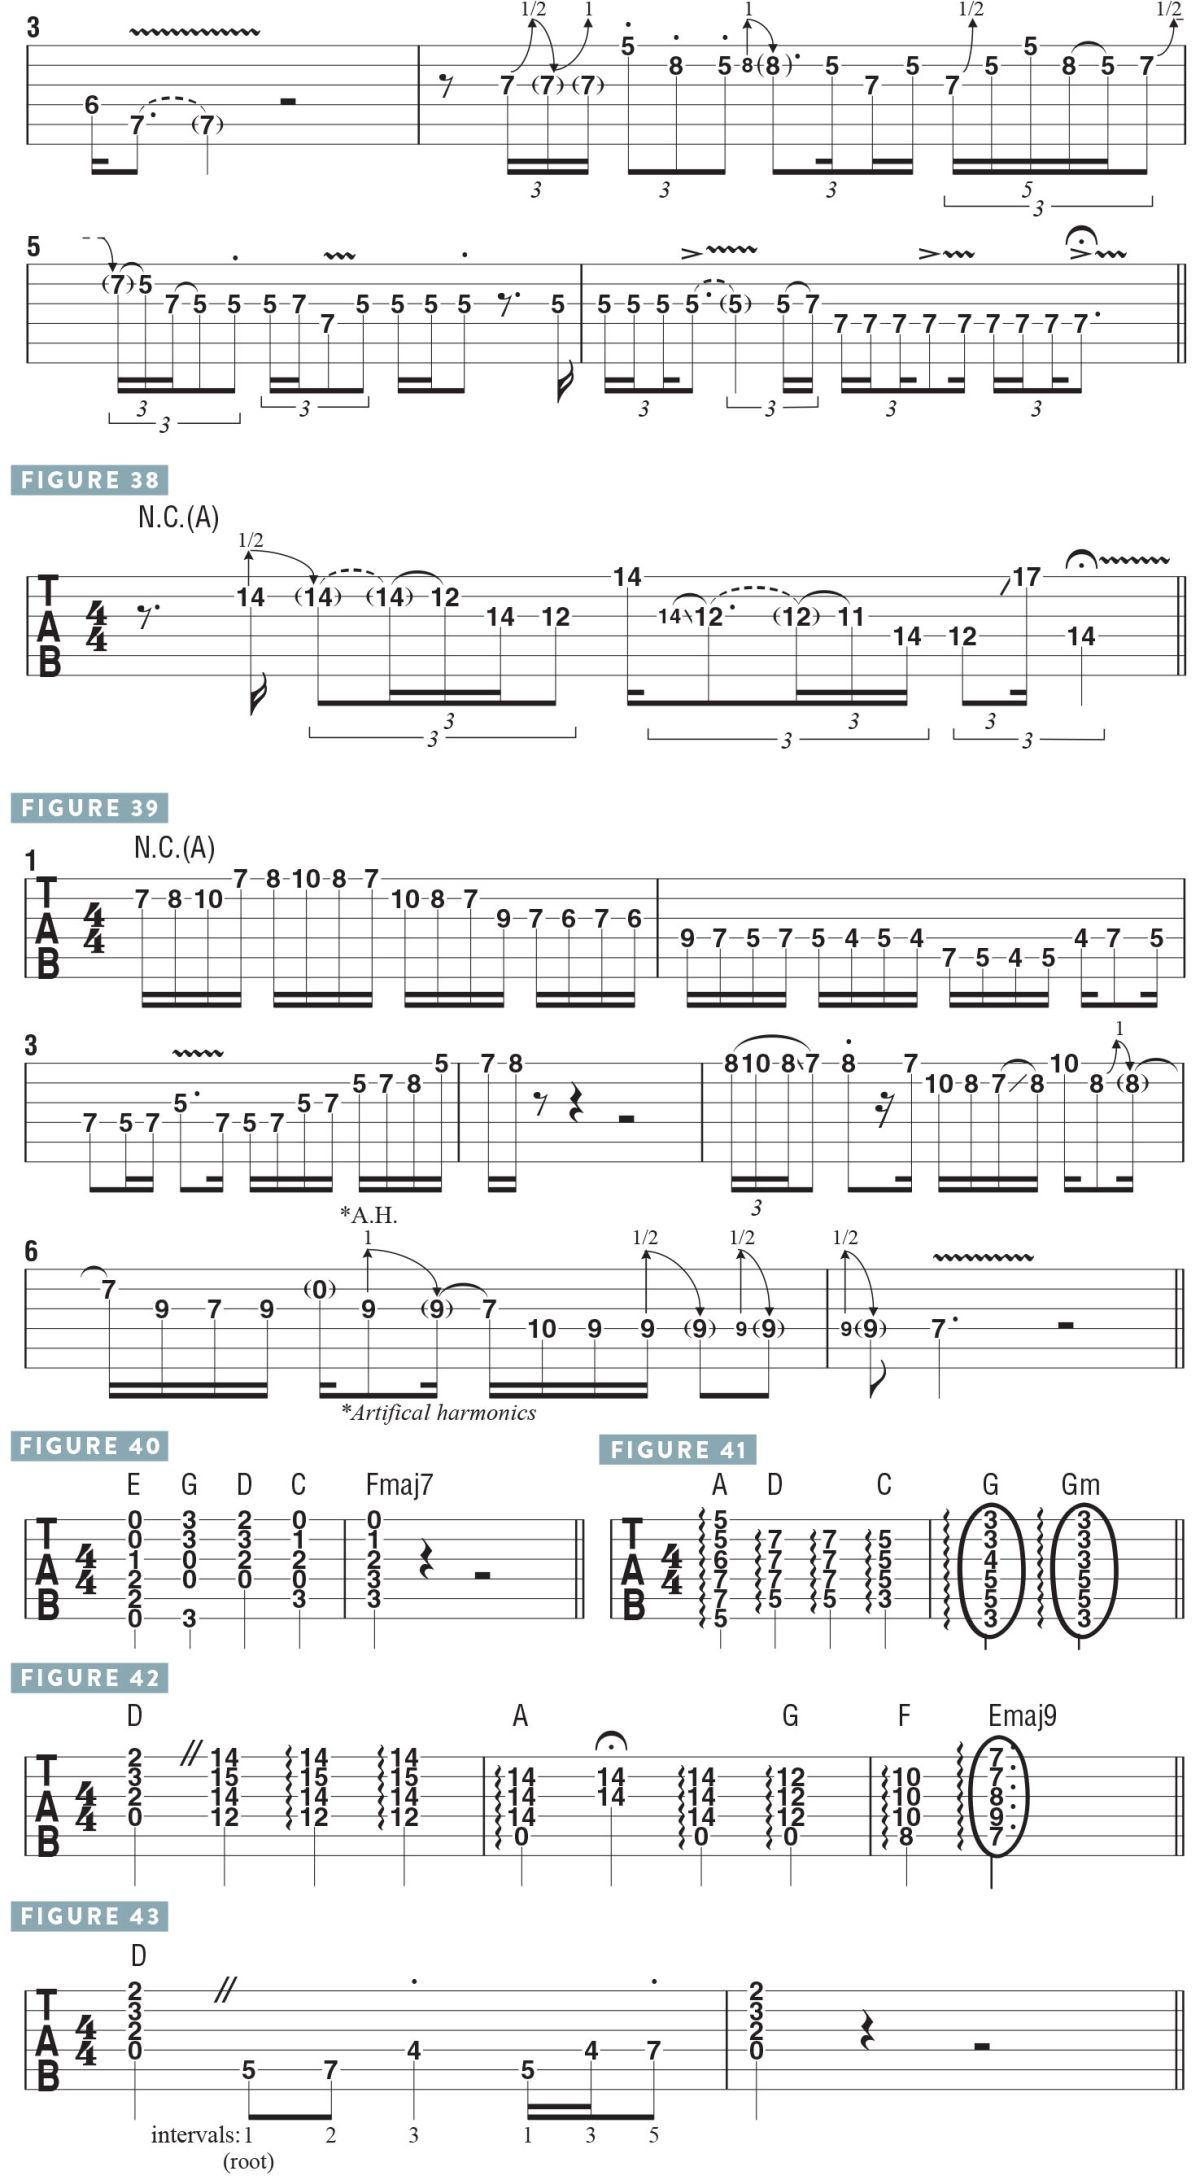 The Basics and Beyond: An In-Depth Guitar Lesson by Steve